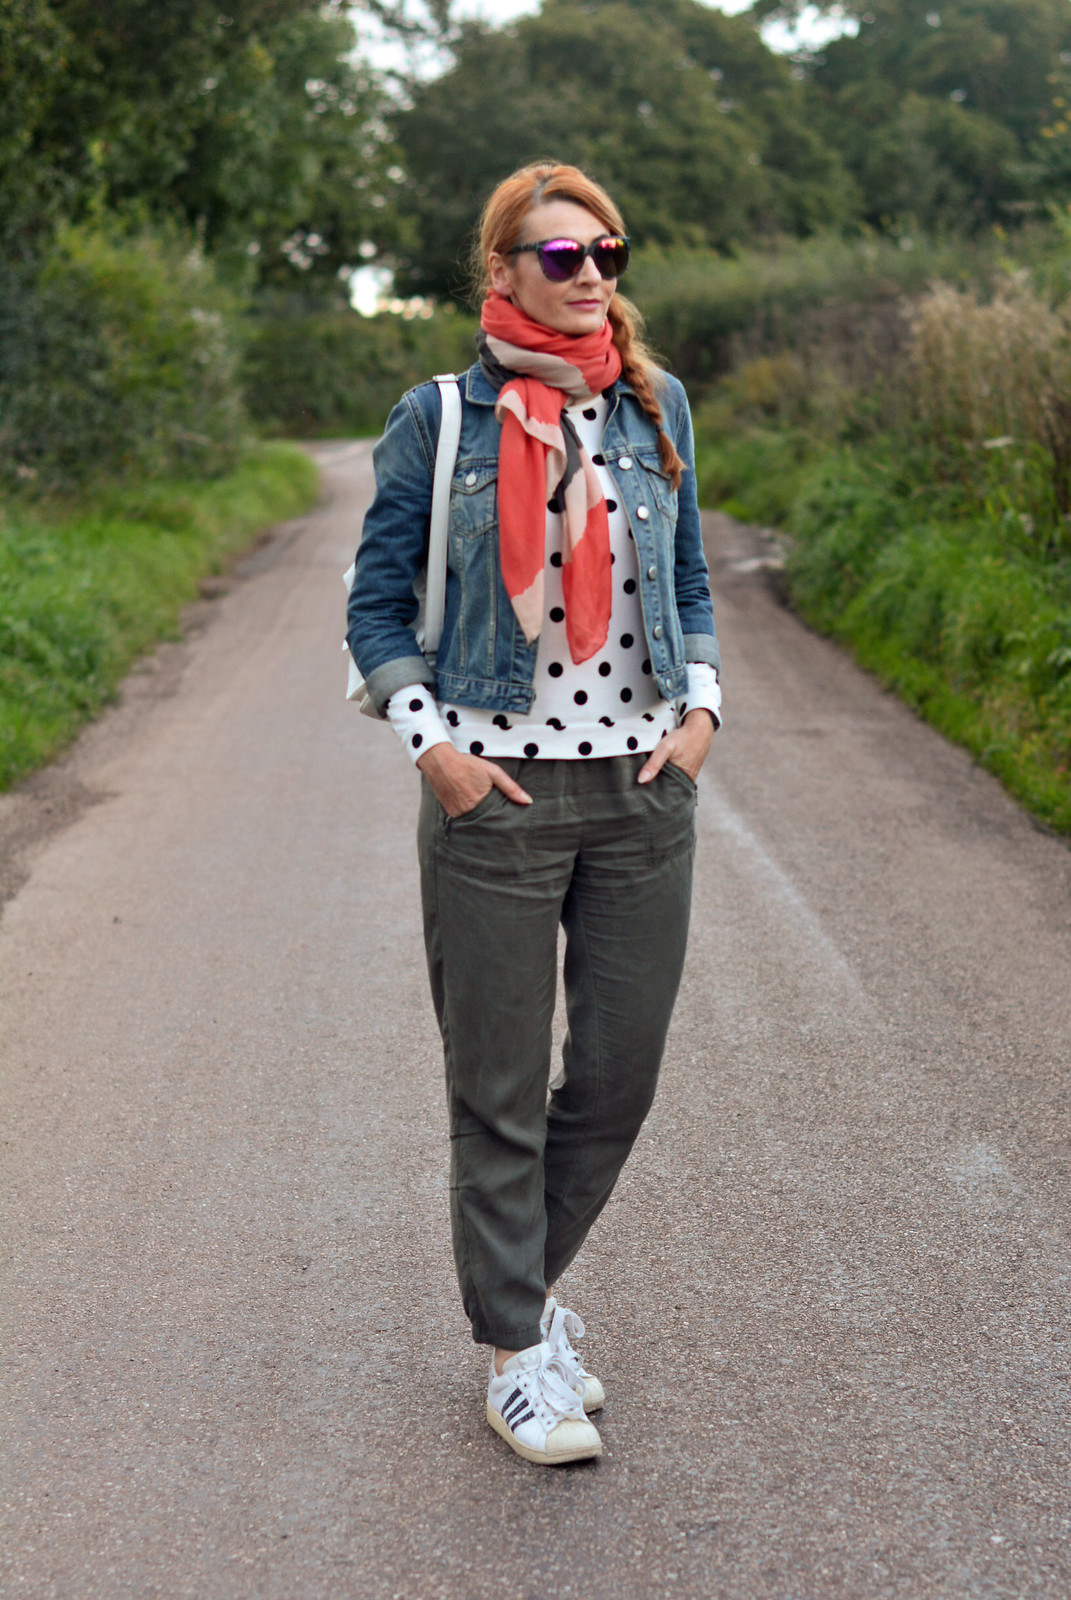 Casual weekend wear | Denim jacket with scarf, polka dots, khaki pants, Adidas Originals